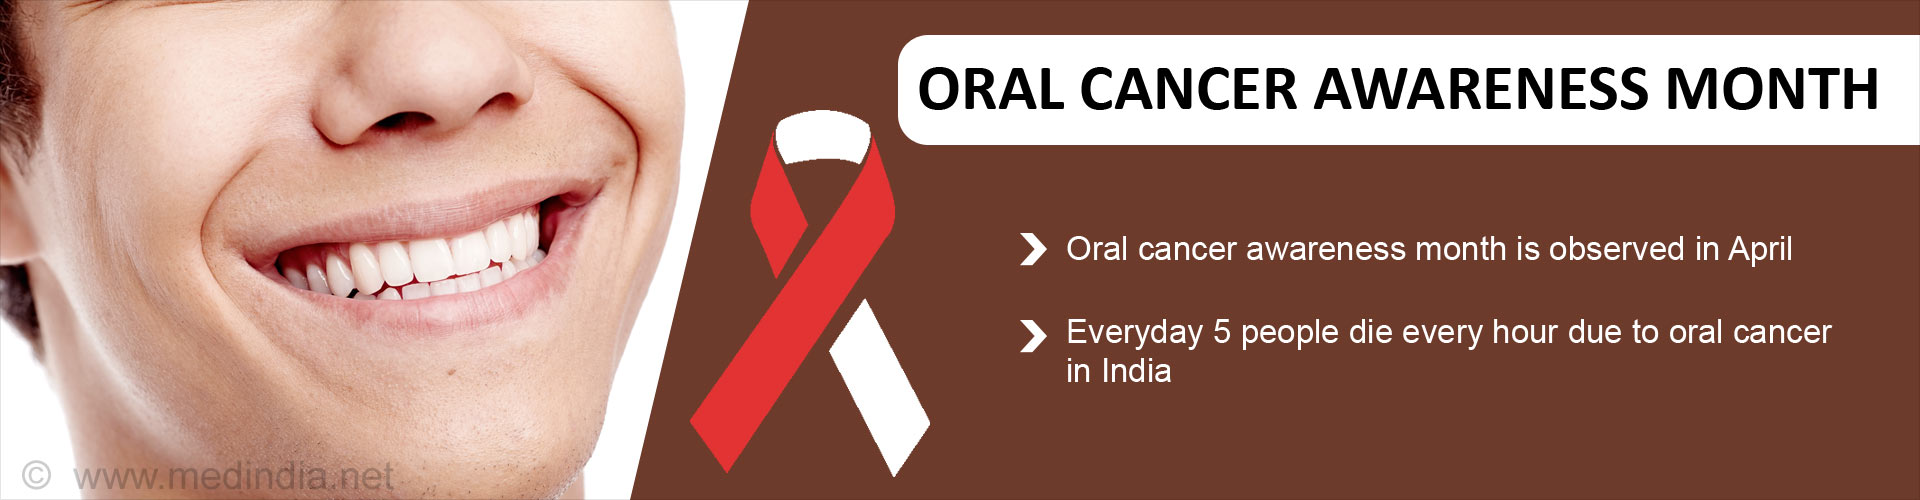 World Oral Cancer Awareness Month: Exclusive Interview With Dr. V.Shantha, Adyar Cancer Institute